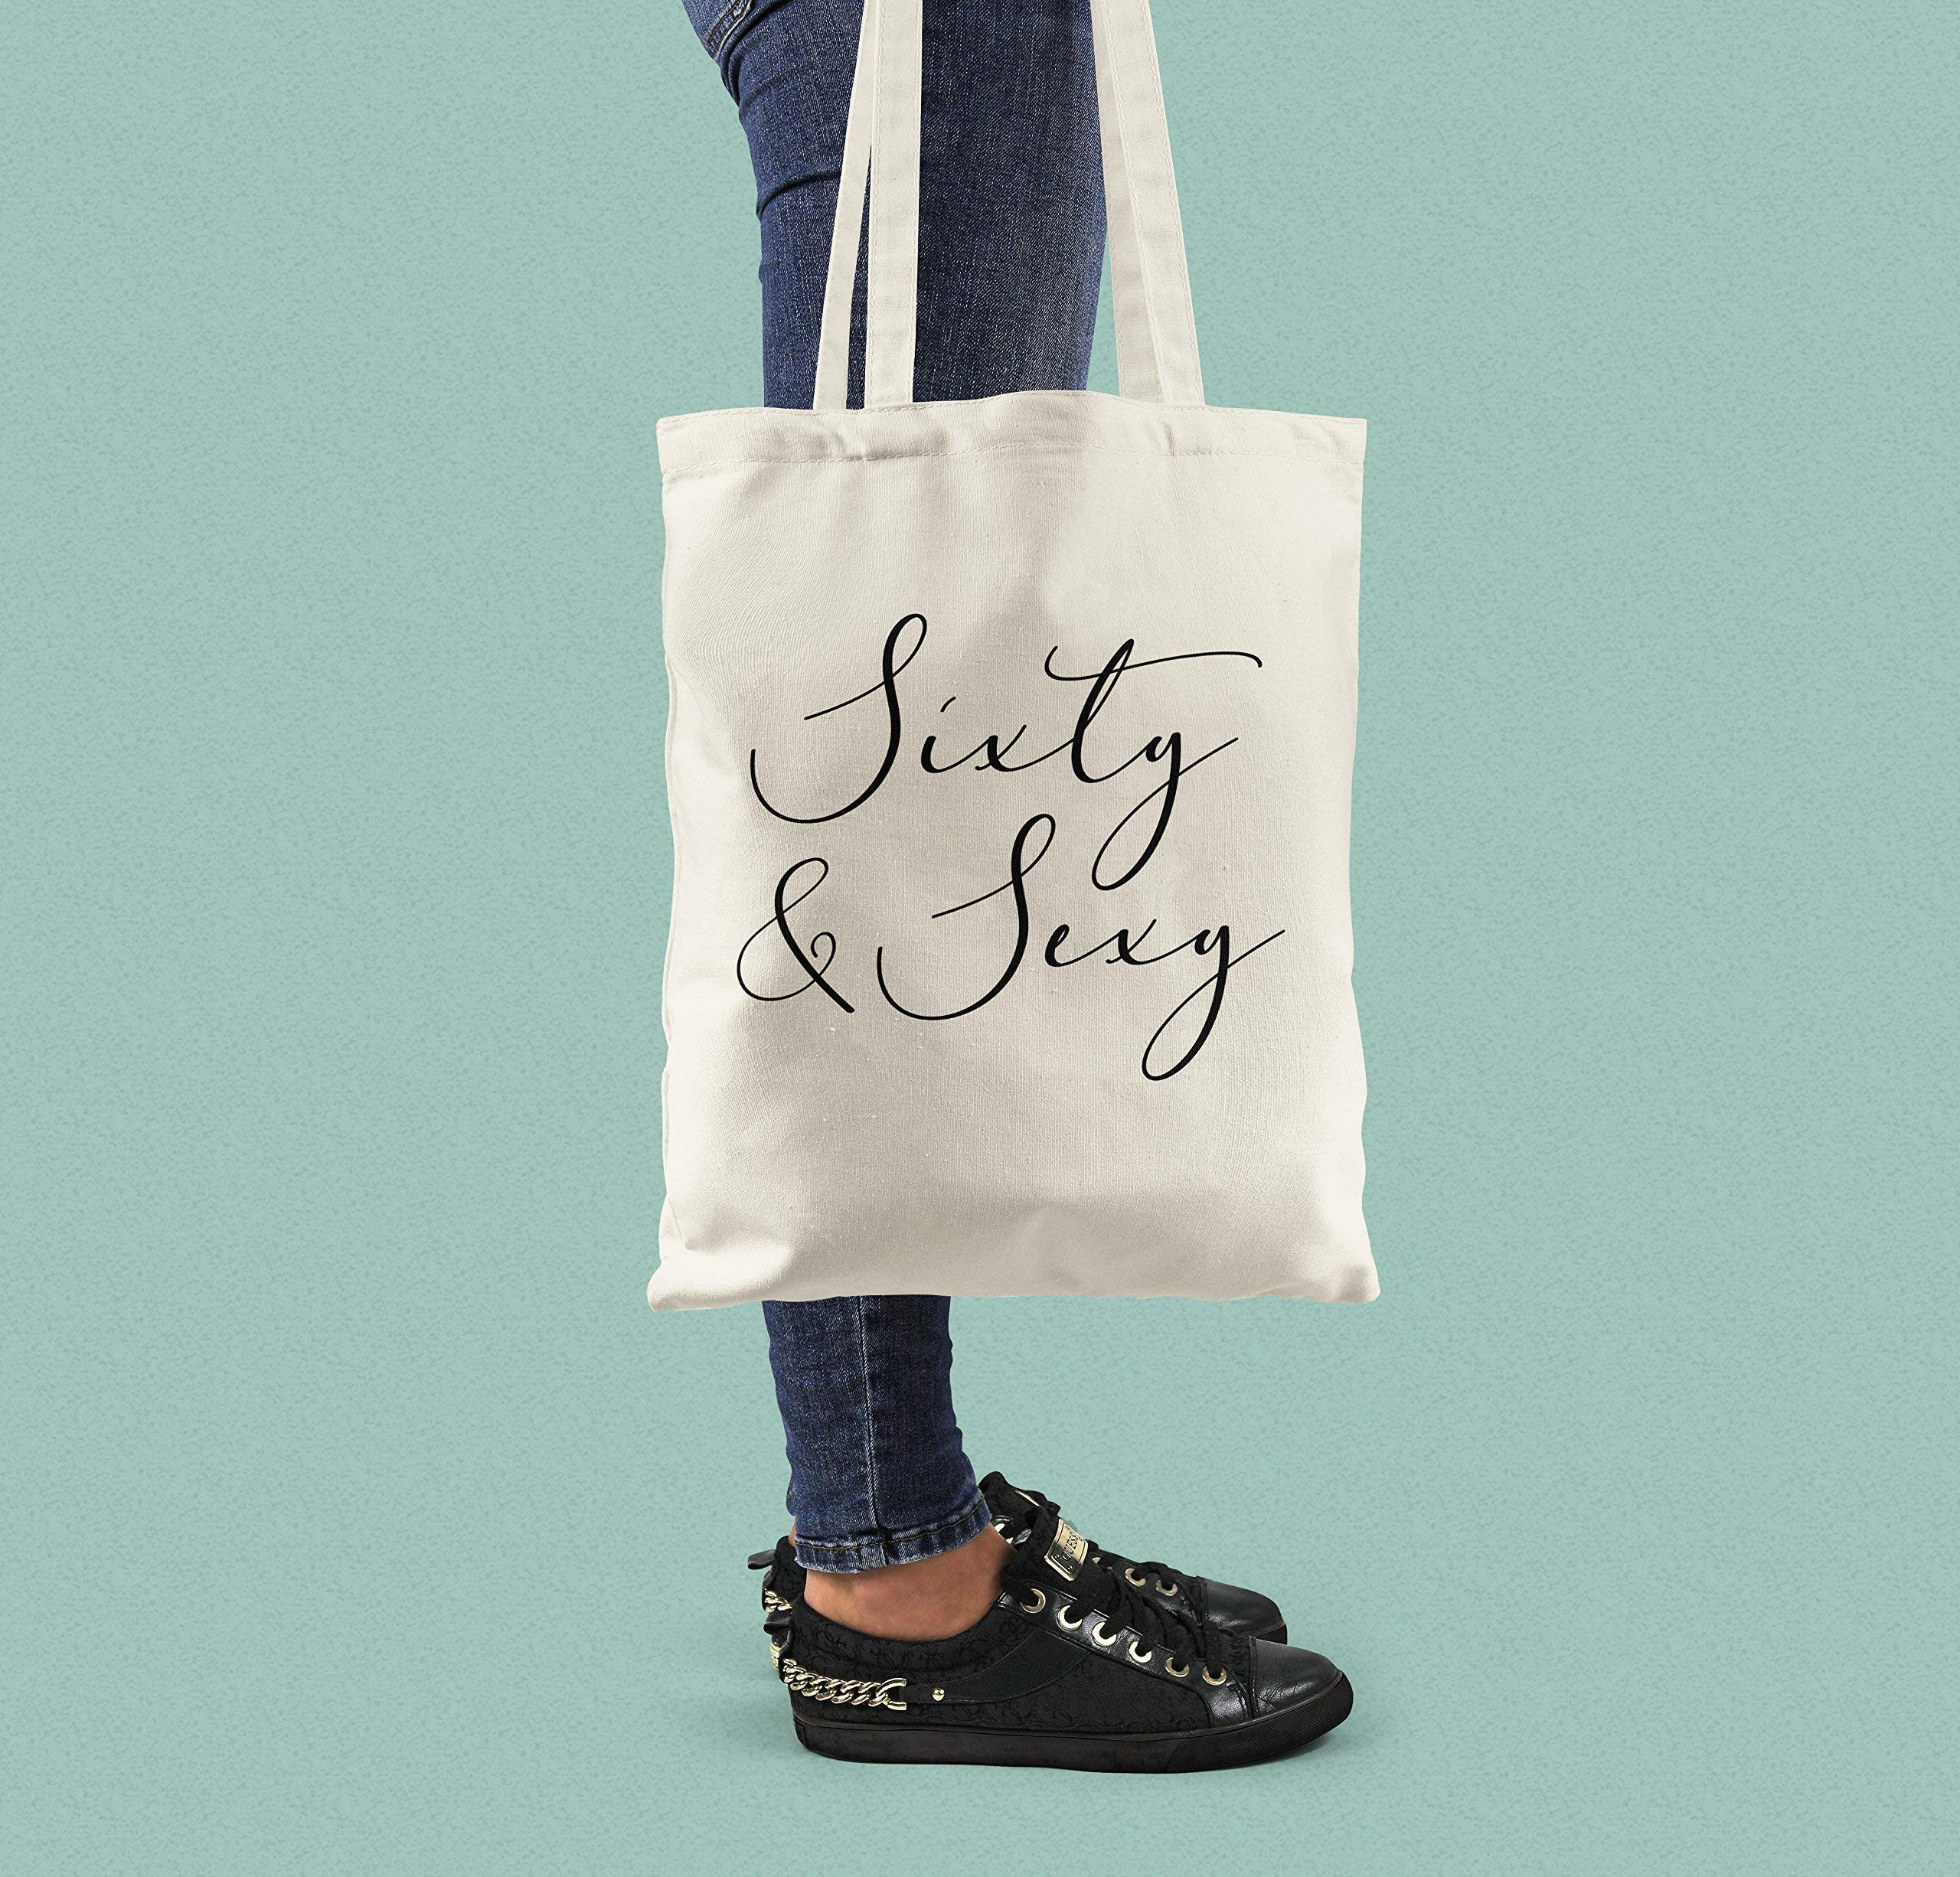 60th Birthday Gift for her - Sixty and Sexy Canvas Tote Bag - handmade-bags